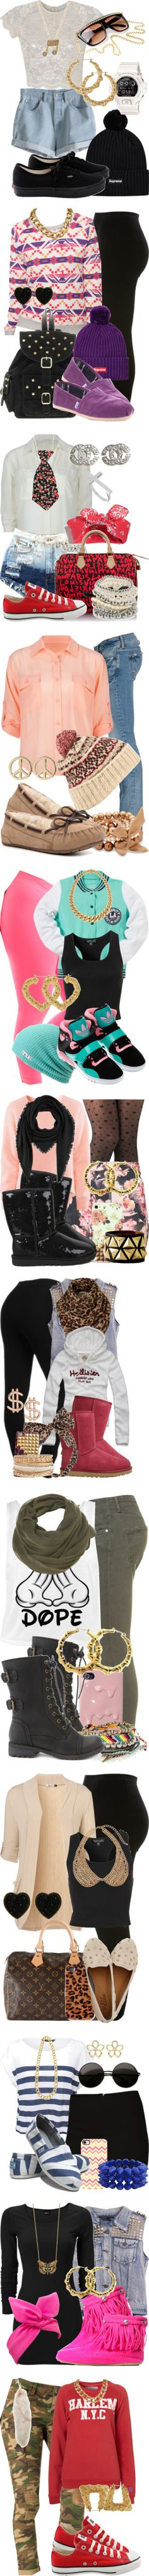 """""""Swagg Part 7"""" by littlemissdeaja ❤ liked on Polyvore"""